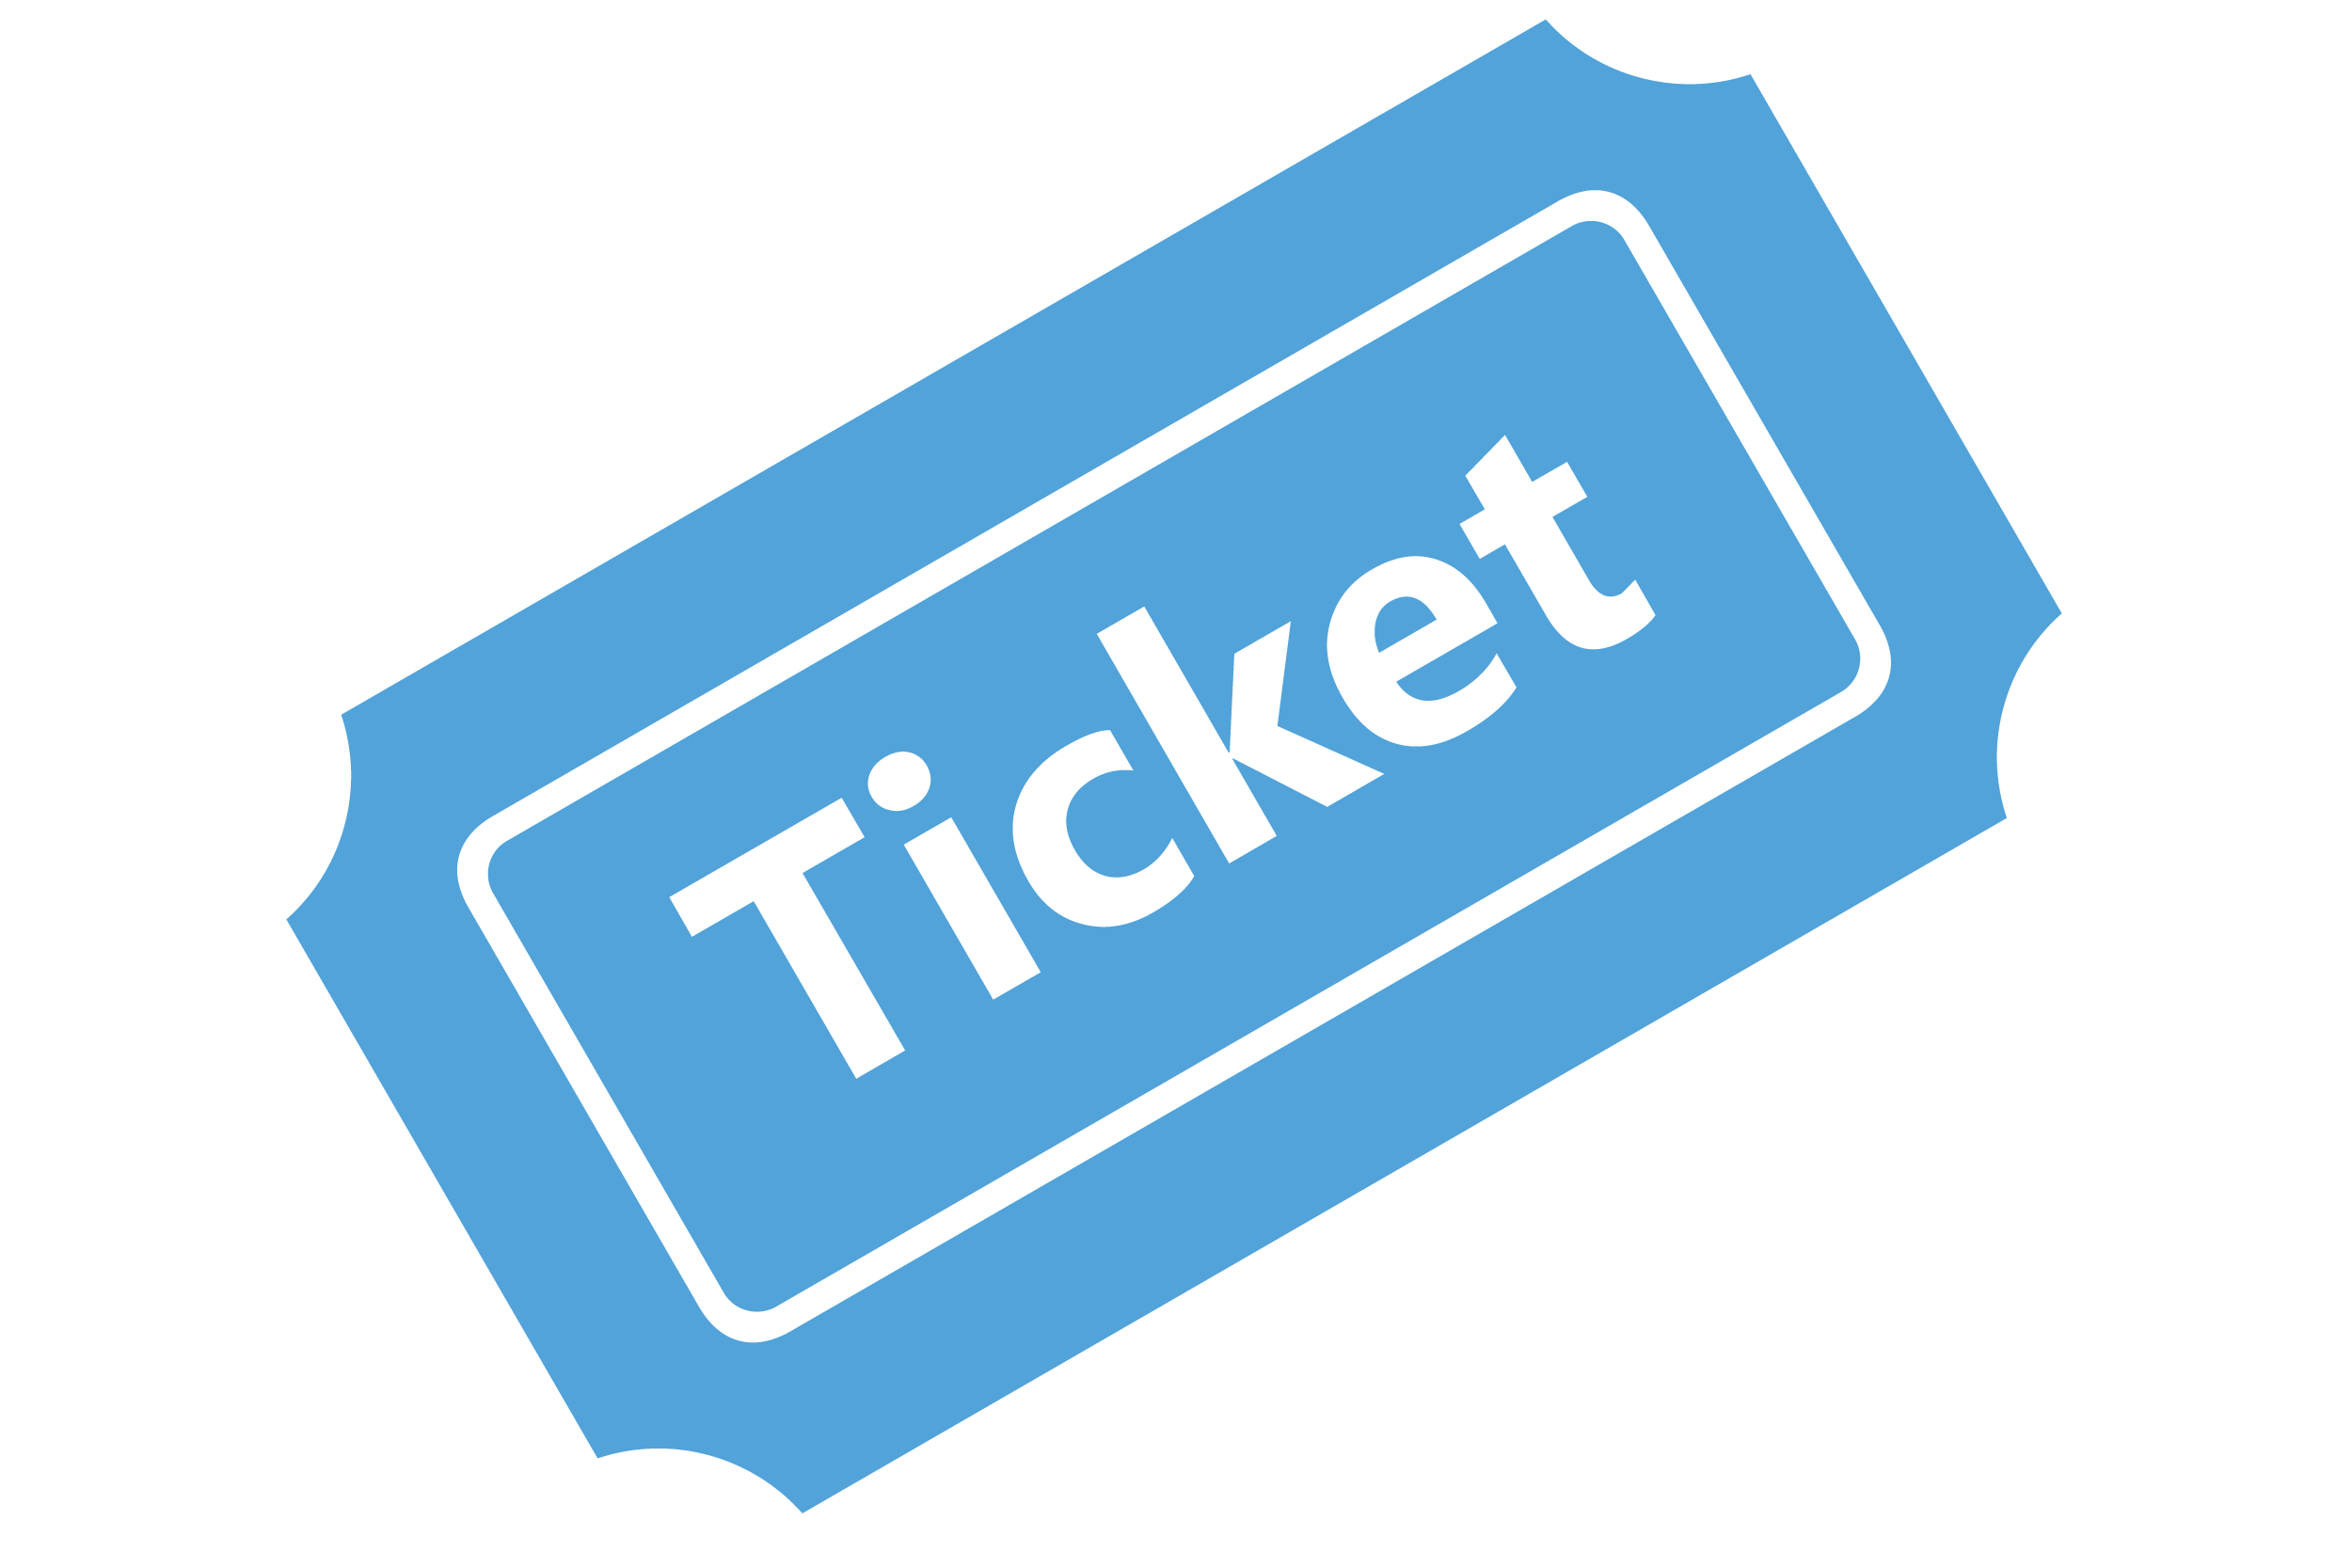 ticket logo png